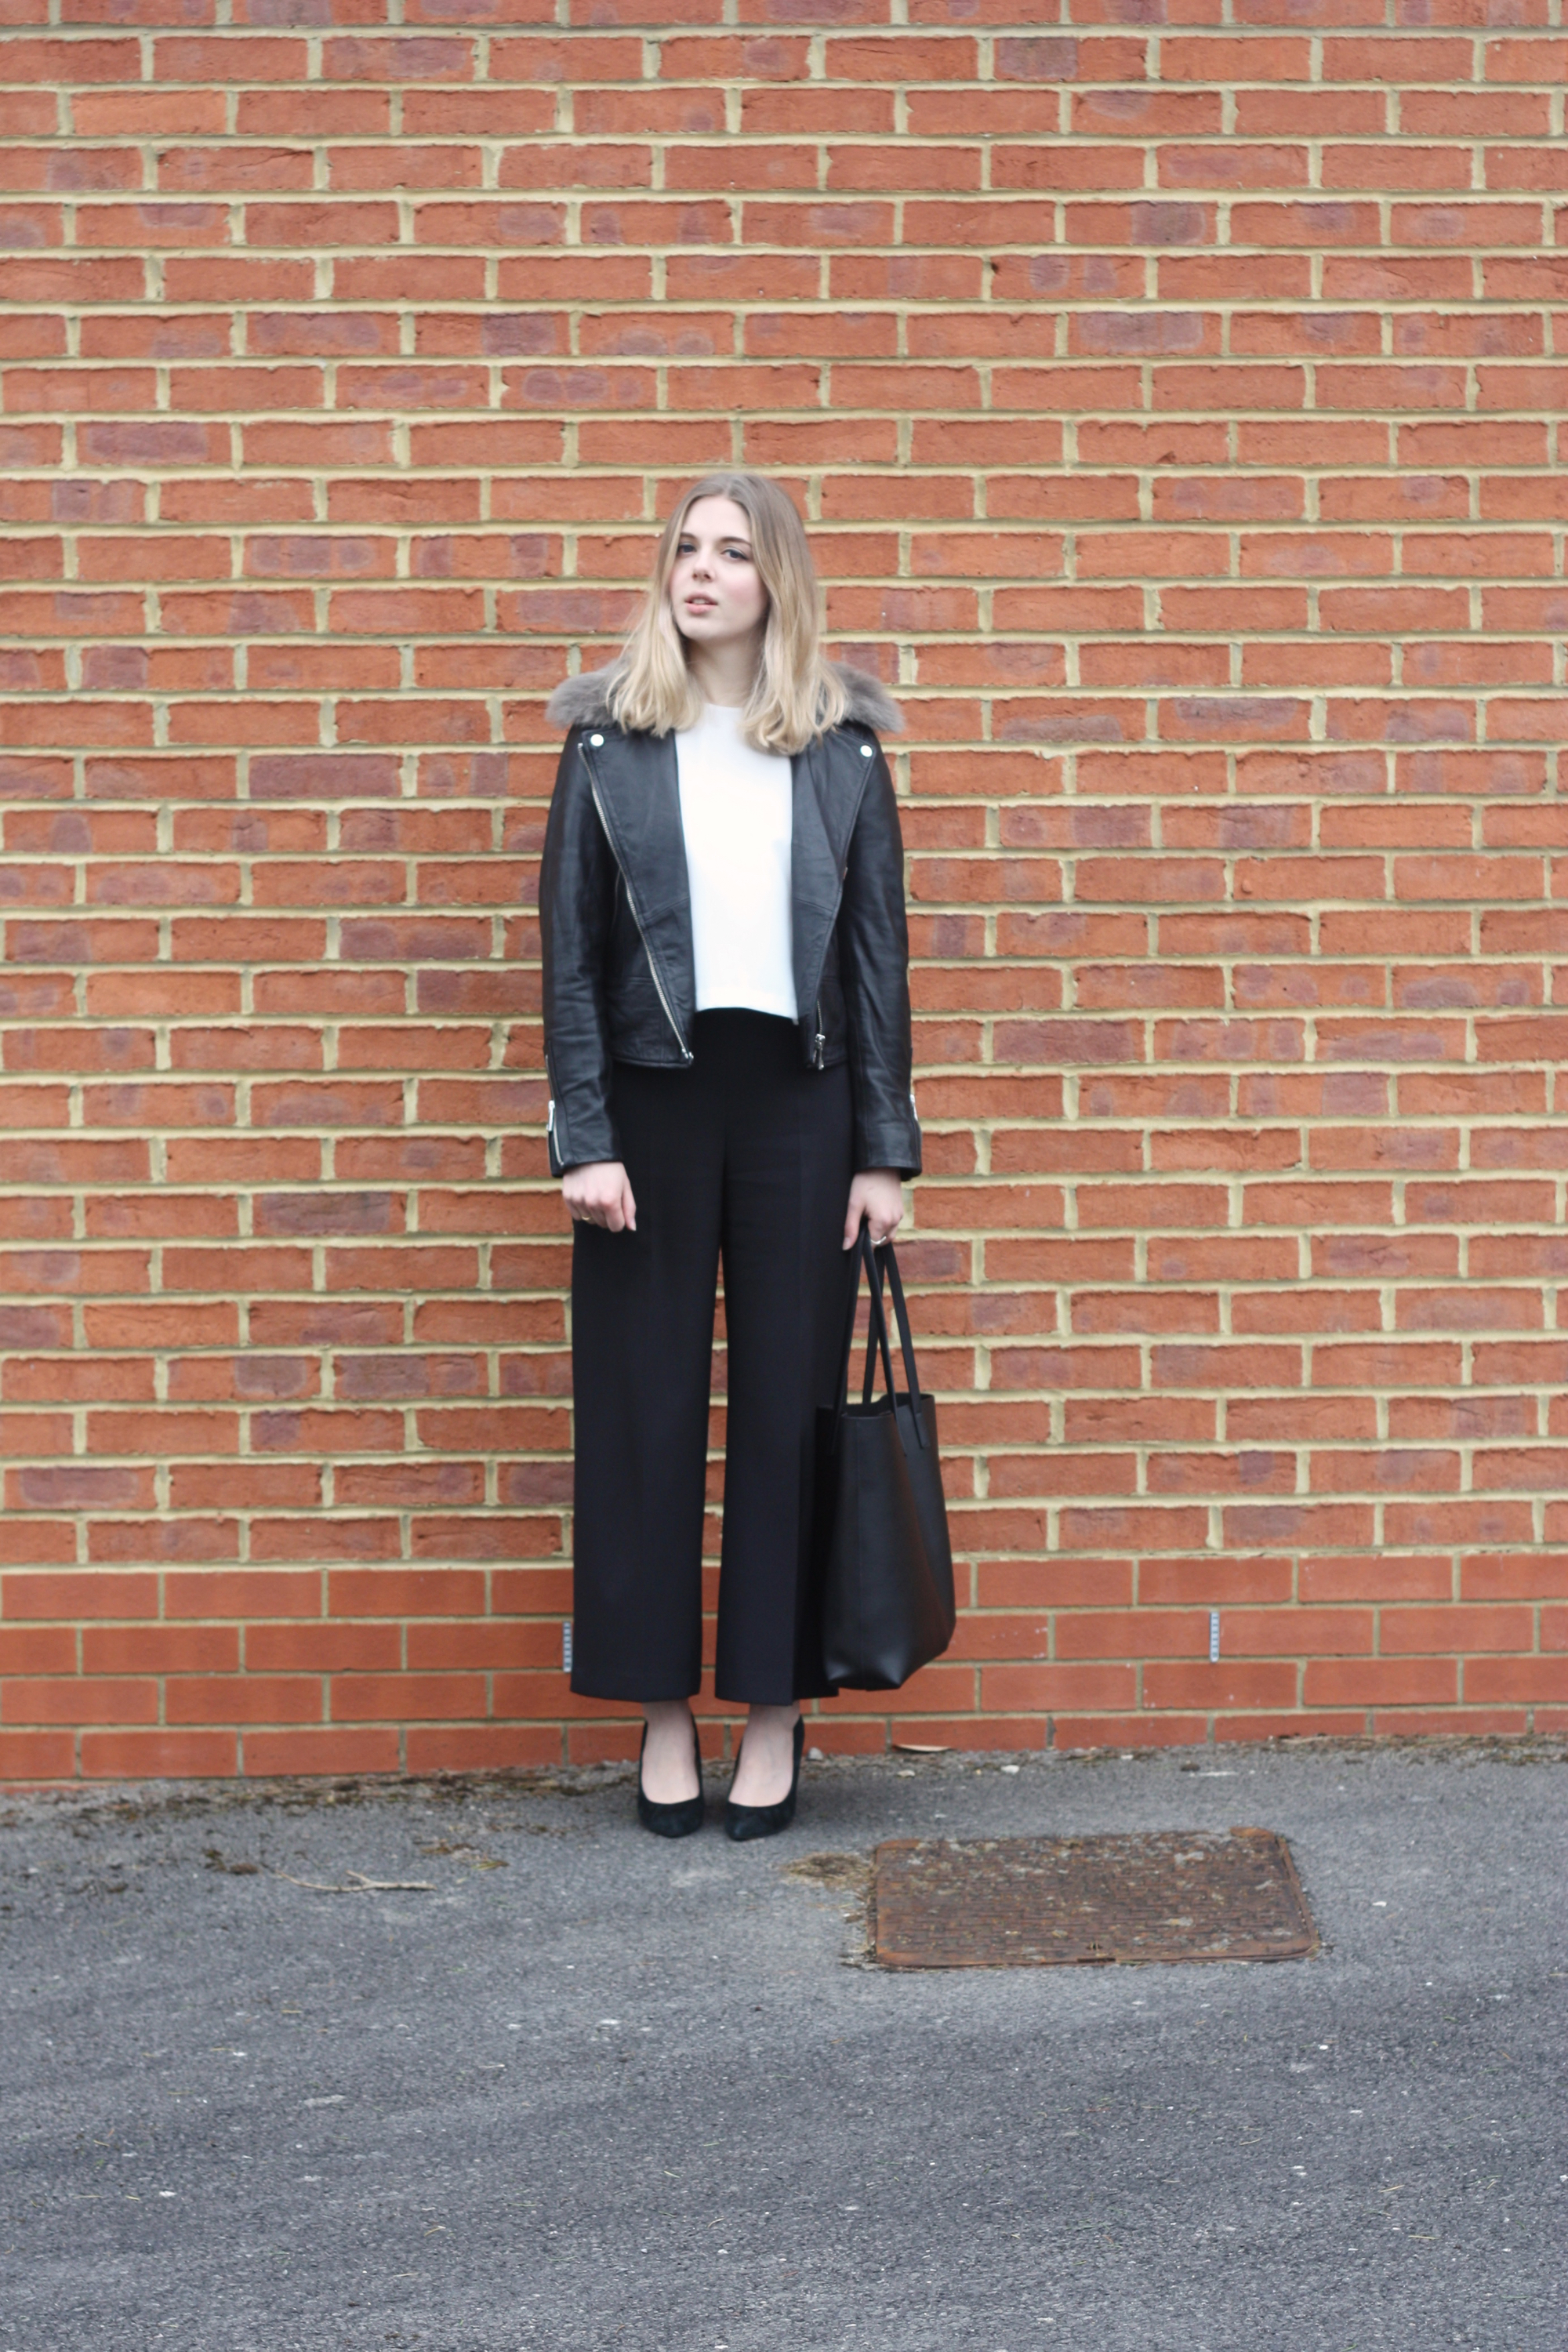 Whistles black suede heels, Zara cream fluted sleeve top and Saint Laurent tote bag